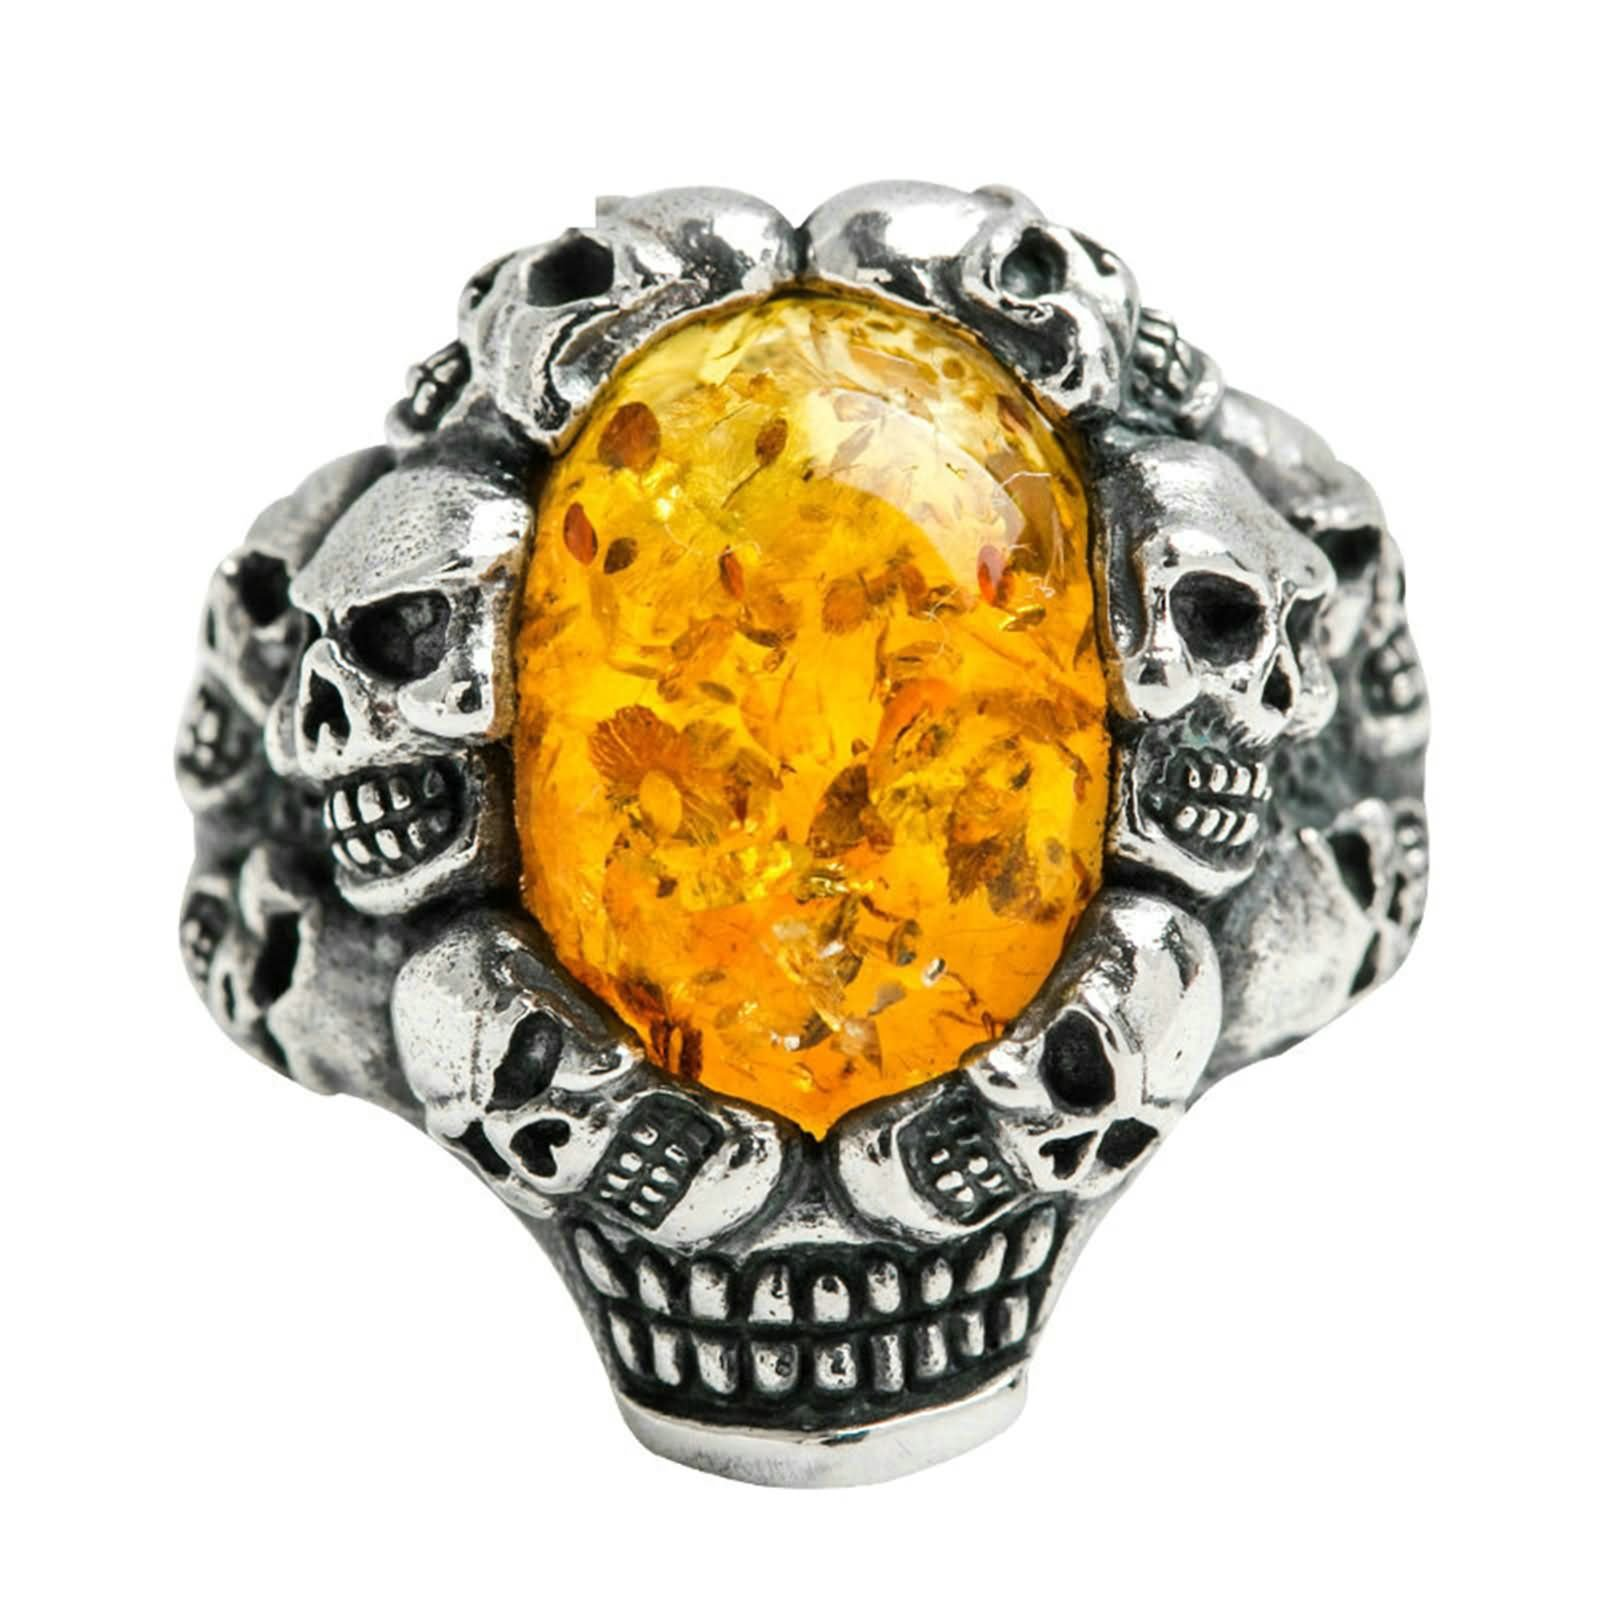 Bishilin Rings for Men Silver Plated Skull Oval Amber Friendship Rings Silver Size 12.5